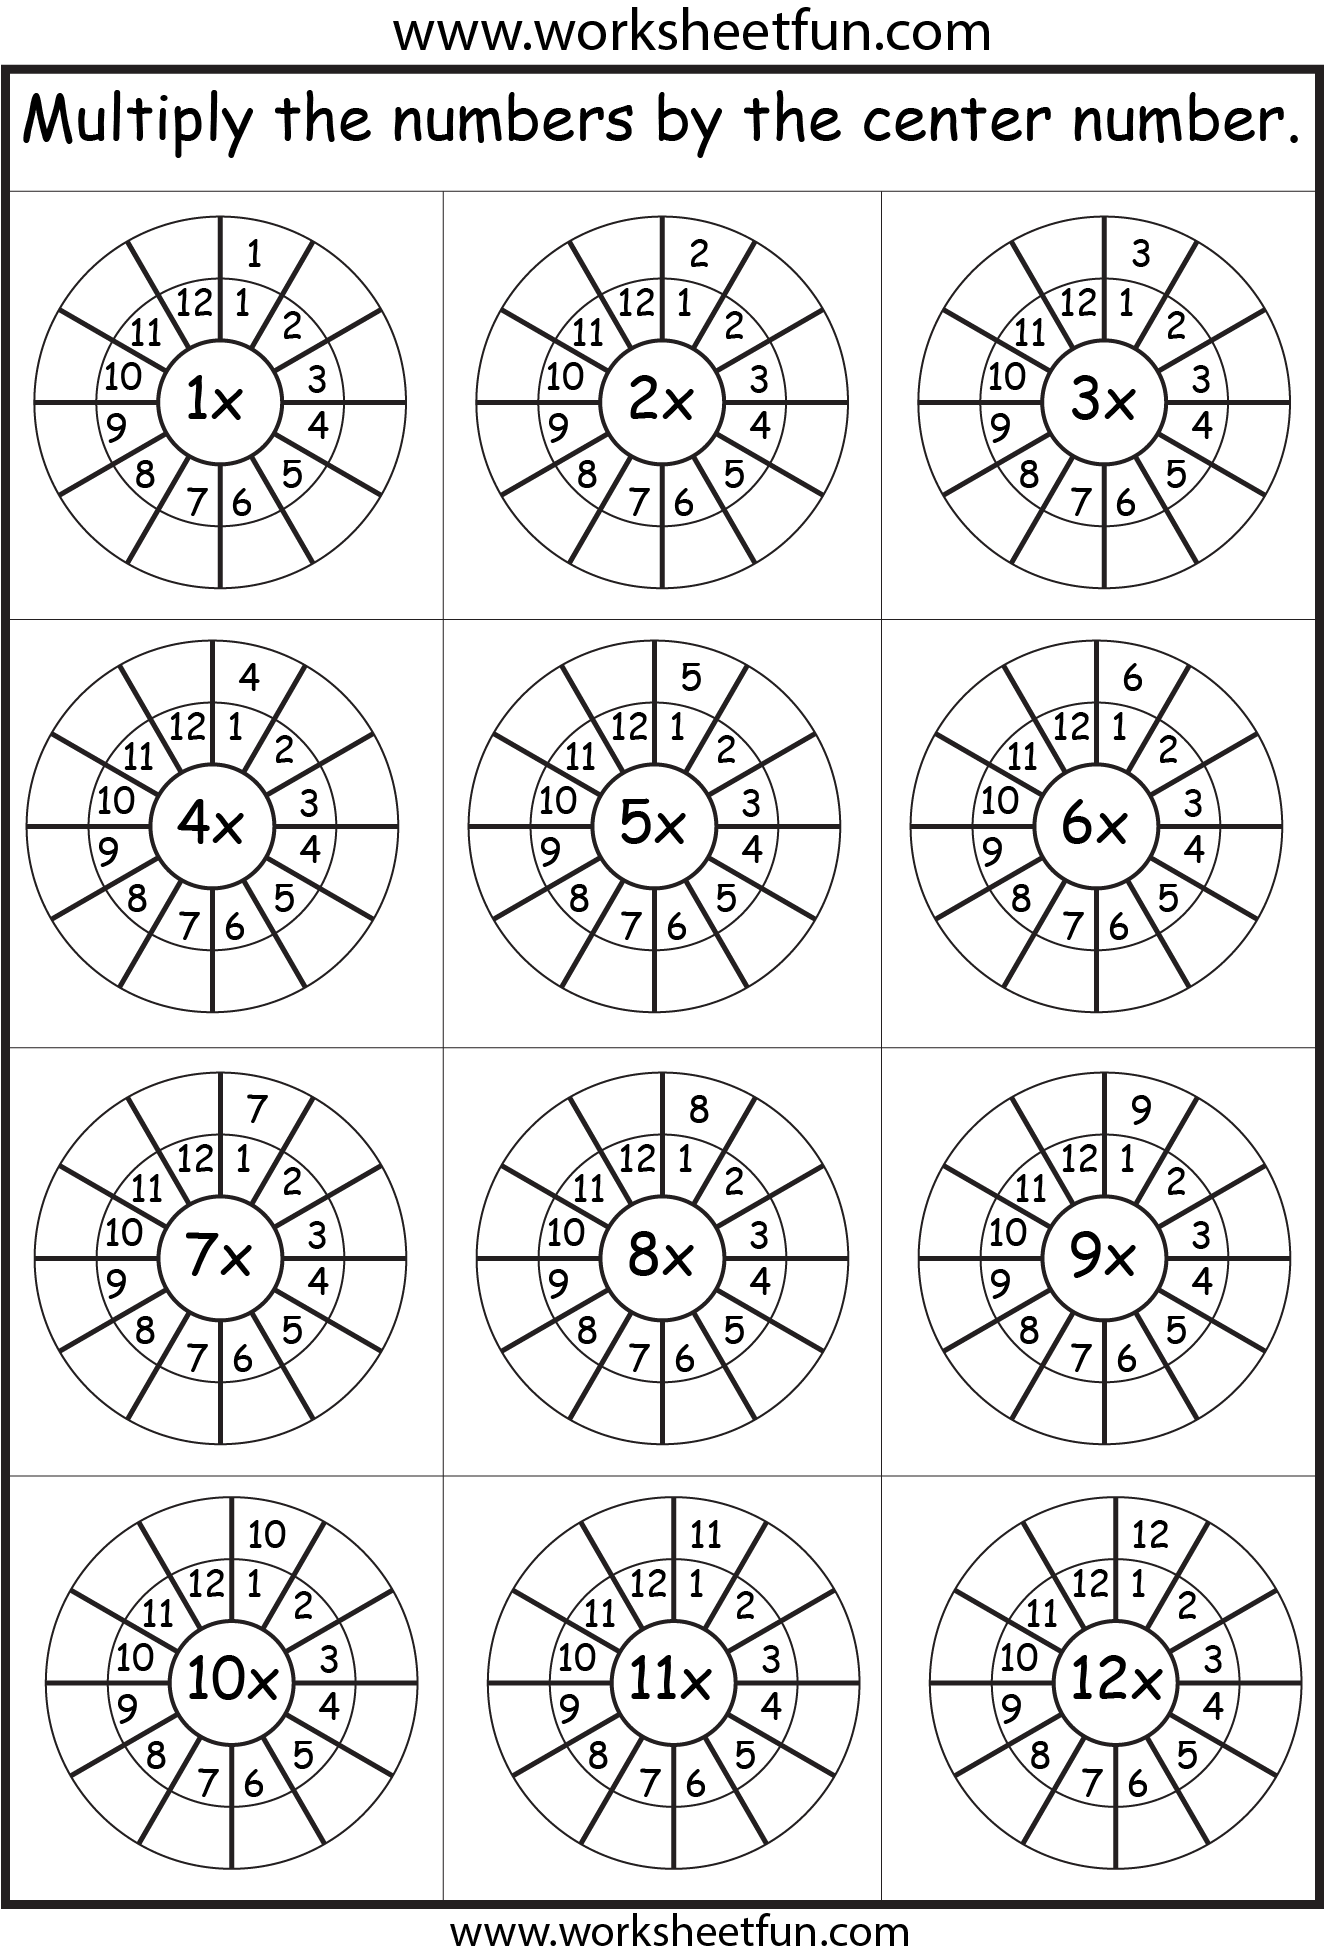 Times Table 2 12 Worksheets 1 2 3 4 5 6 7 8 9 10 11 12 13 14 15 16 17 18 19 And